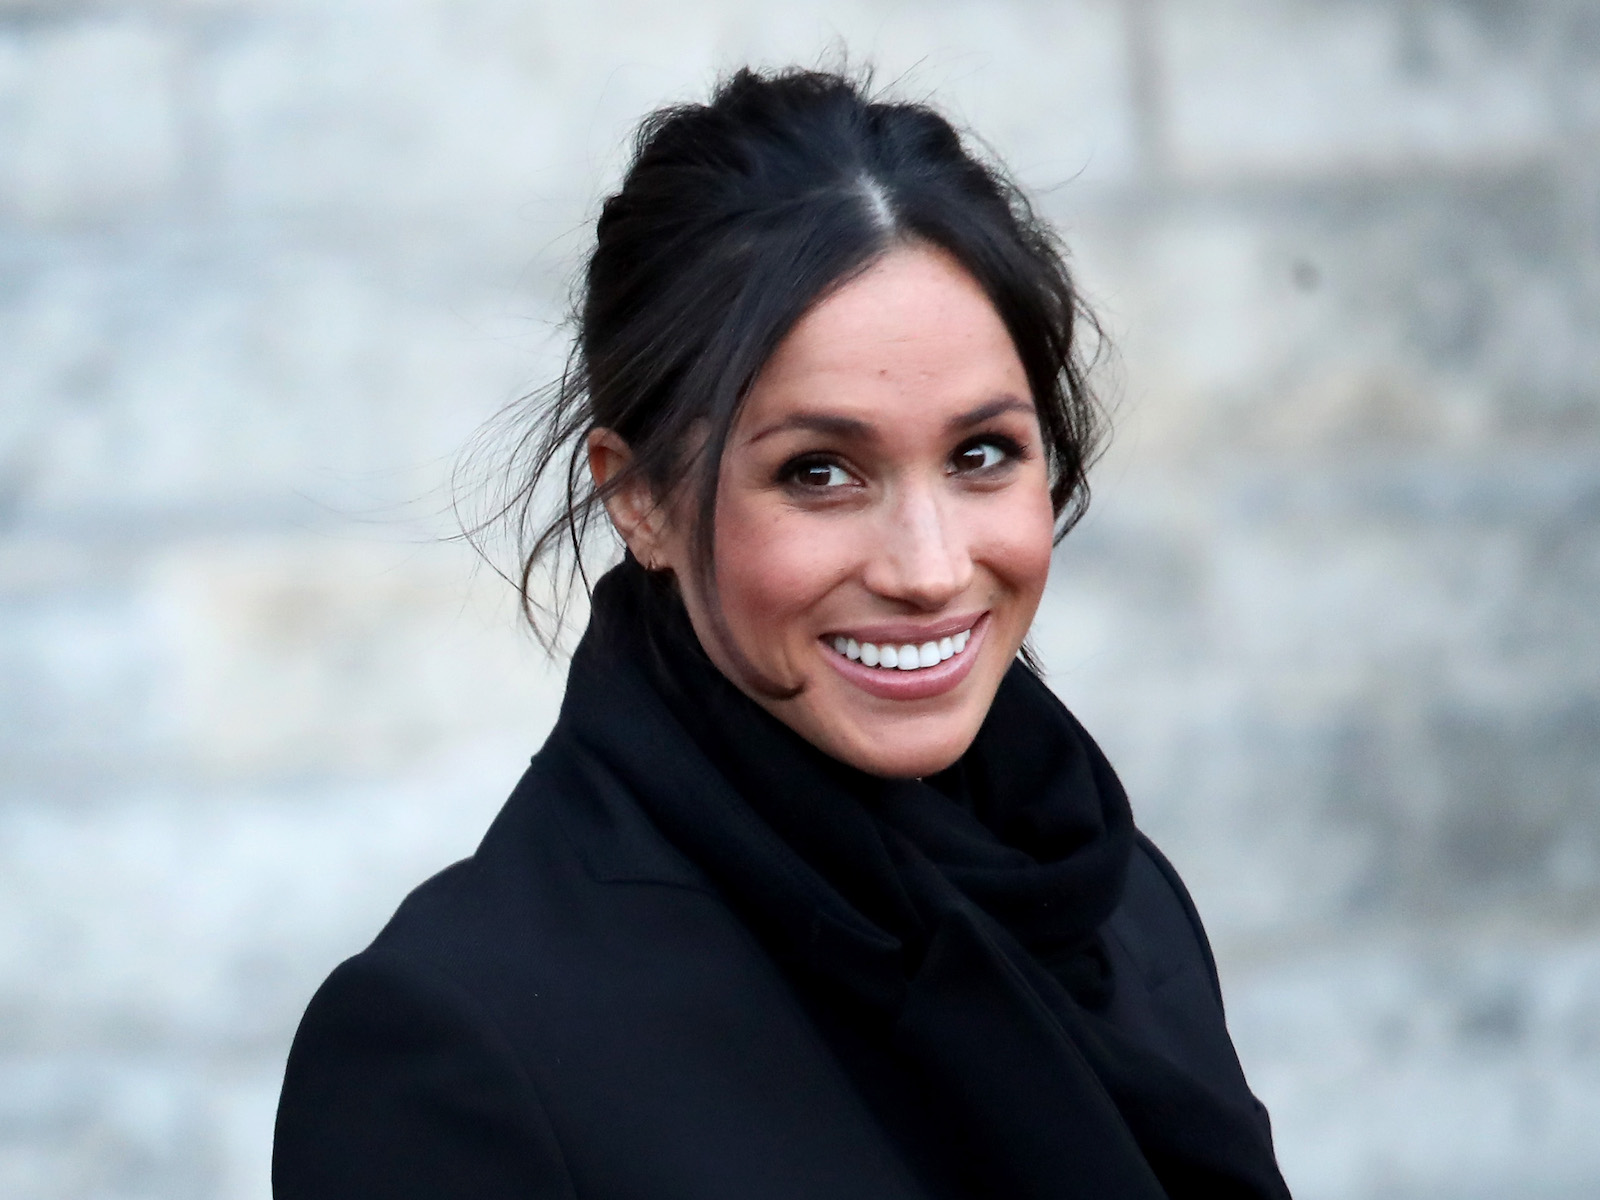 Meghan Markle candy shop